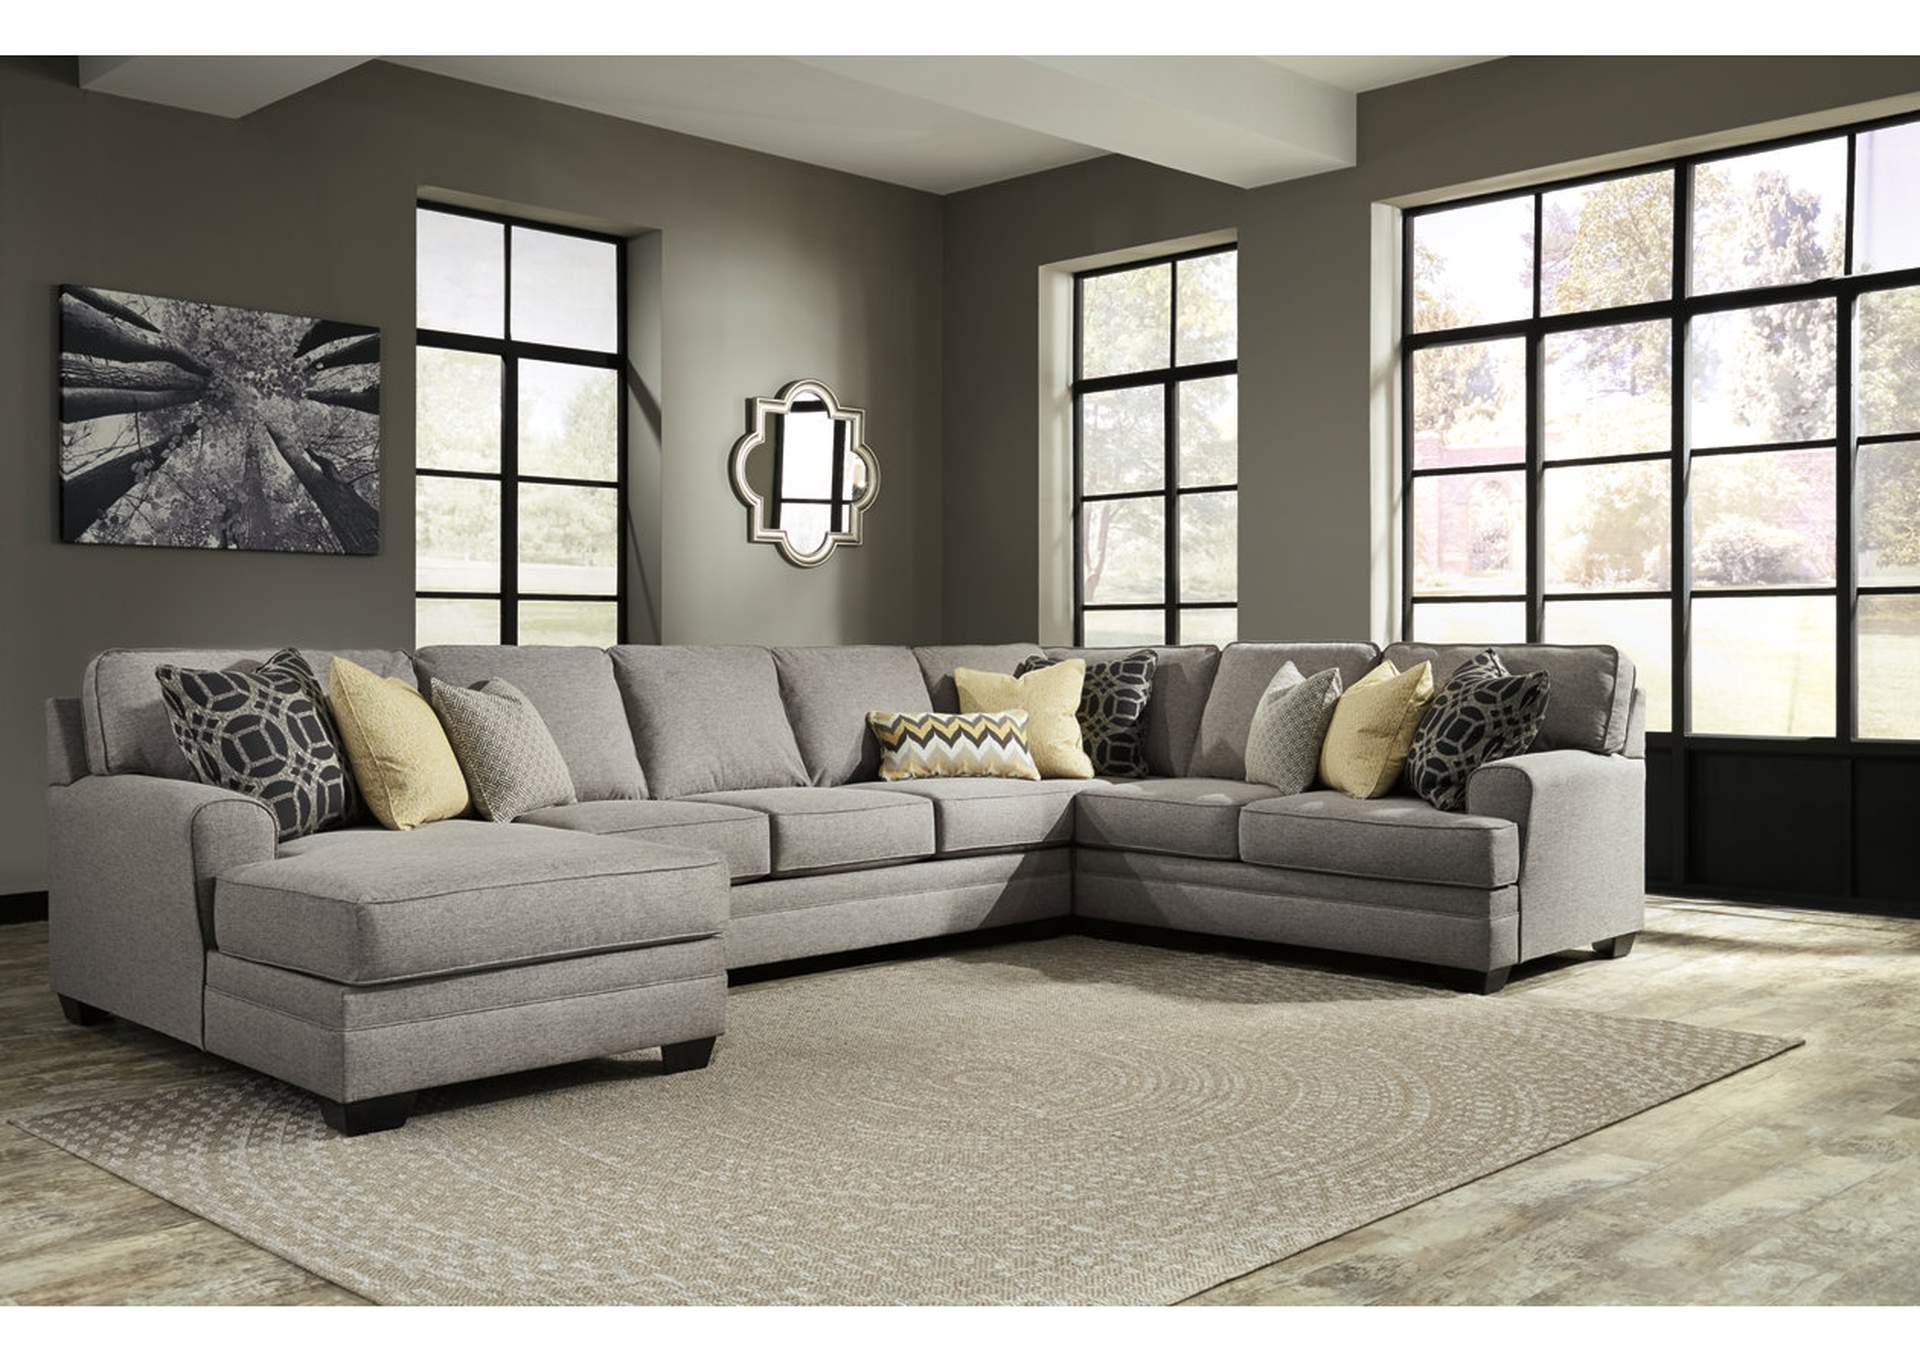 Ivan Smith Cresson Pewter Left Facing Corner Chaise Sofa Sectional